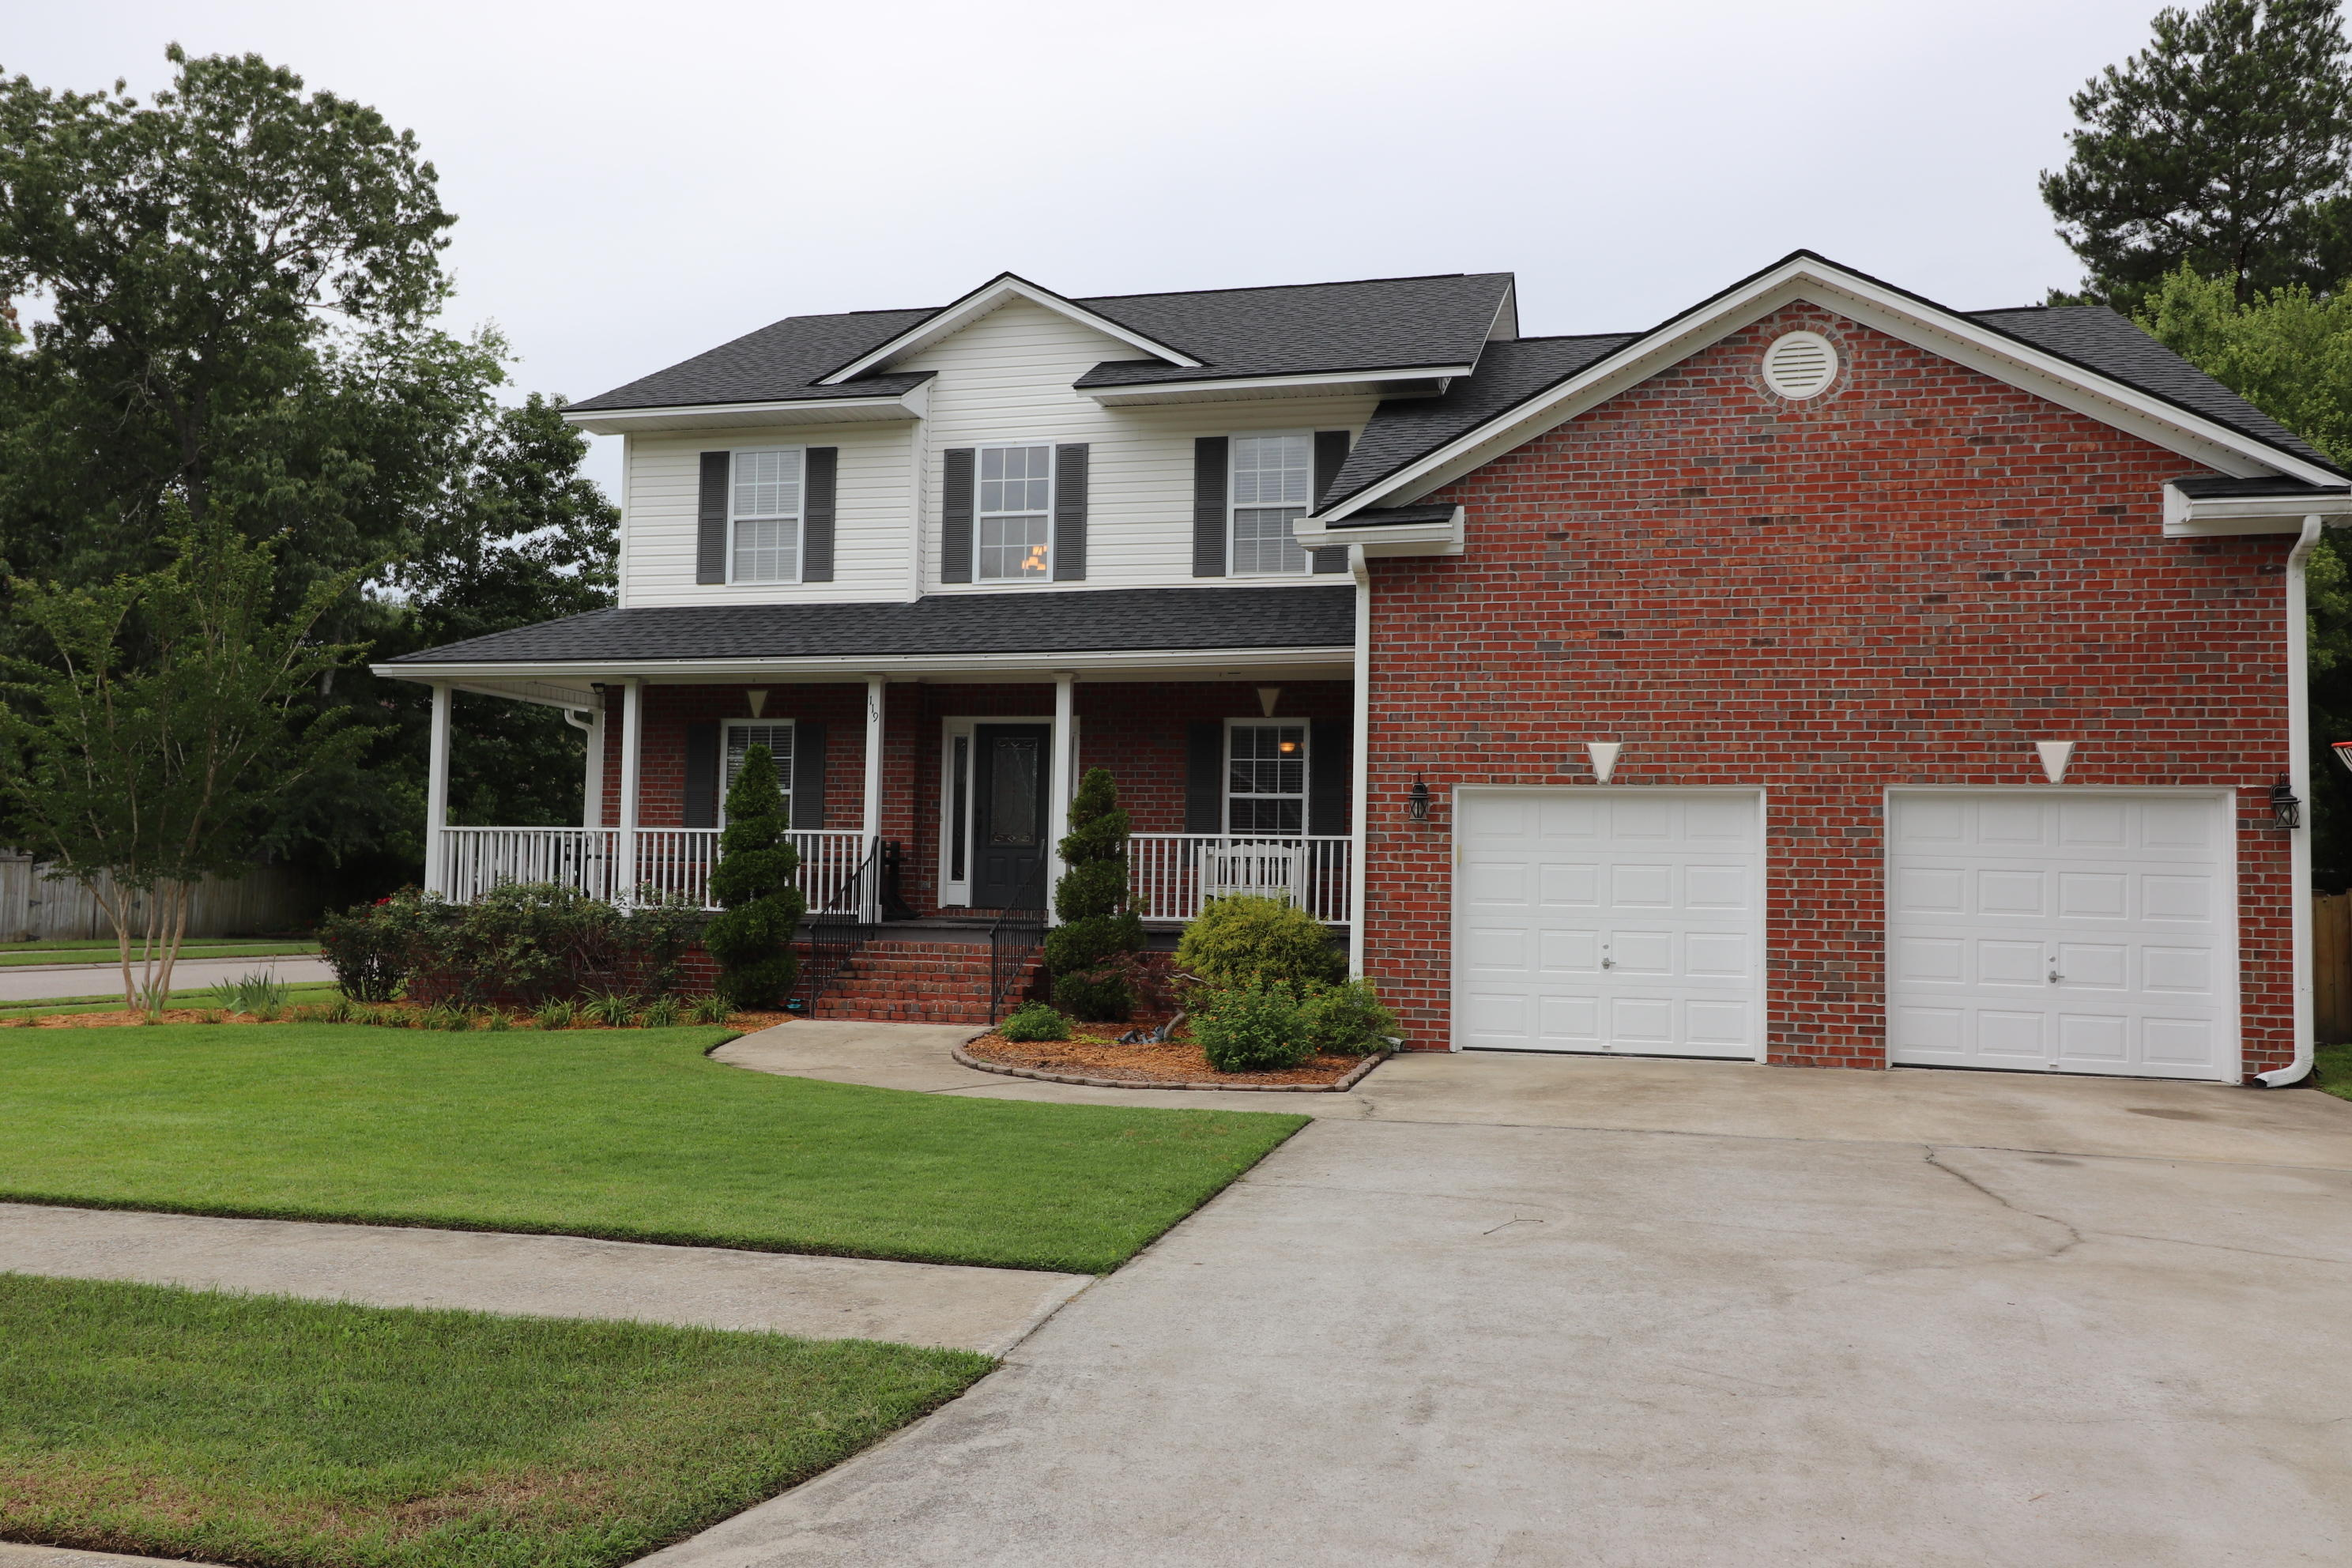 Photo of 119 Spalding Cir, Goose Creek, SC 29445